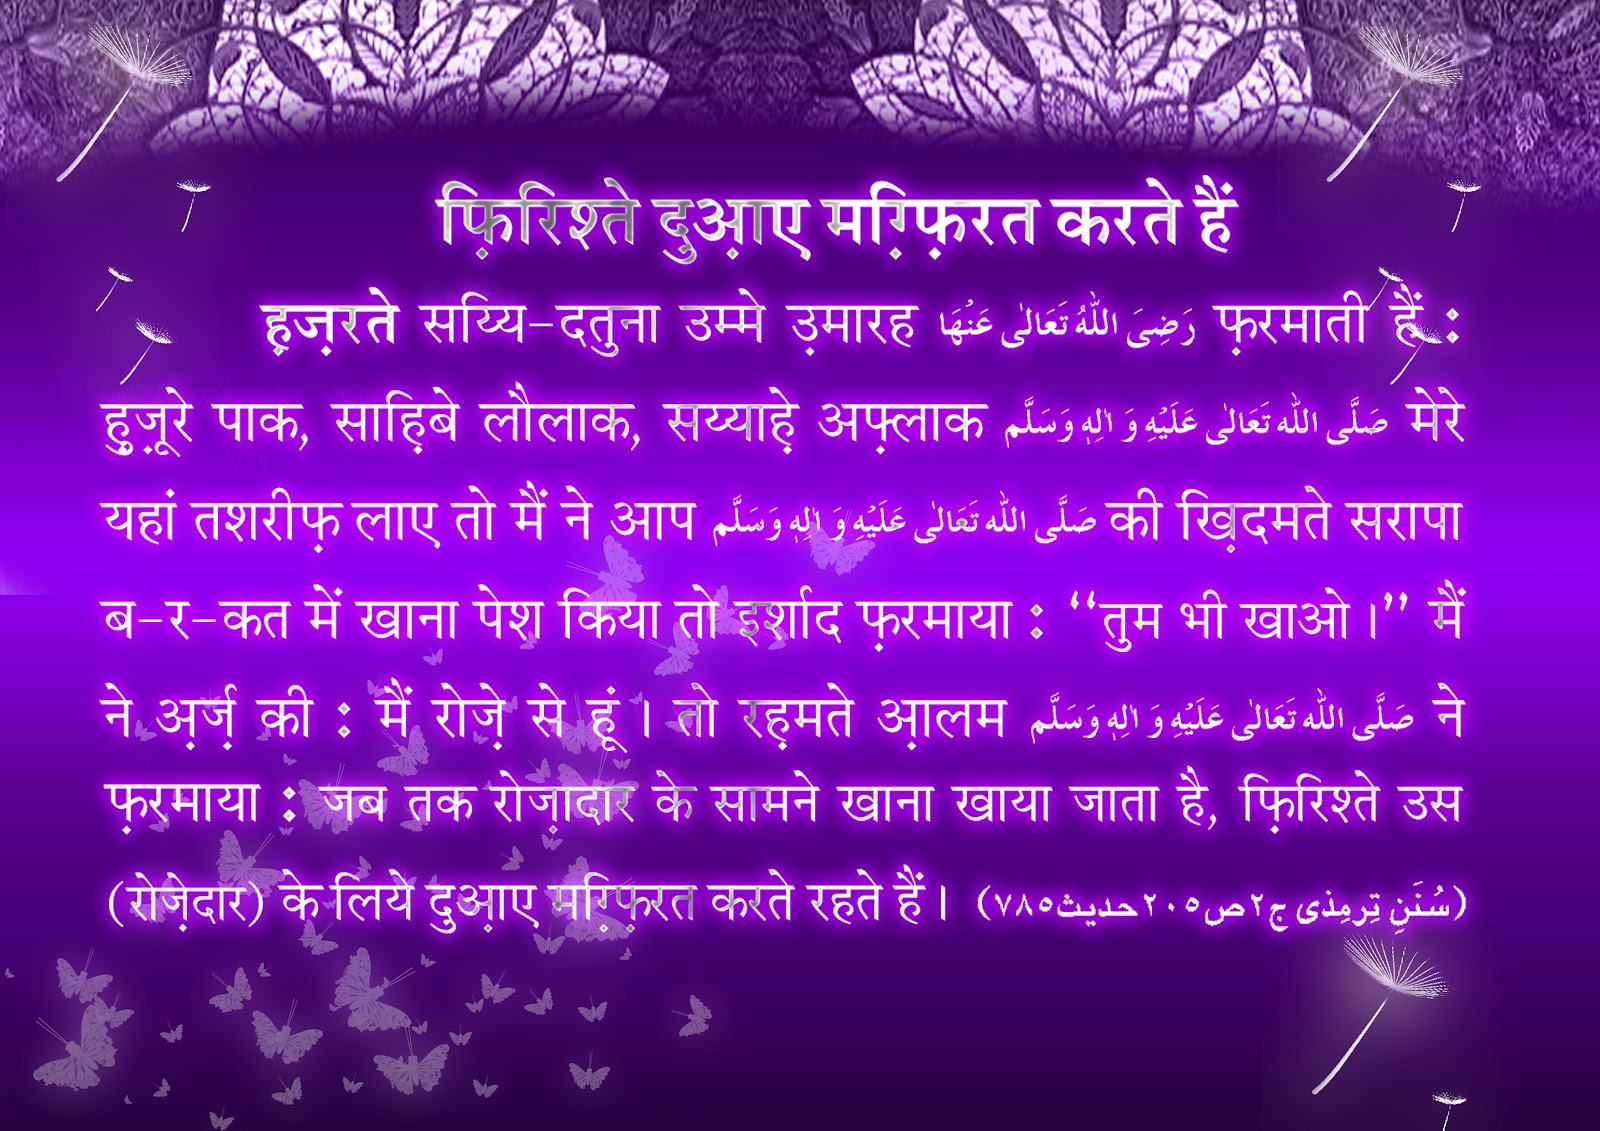 Pictures Of Islamic Wallpapers With Hadith In Hindi Kidskunstinfo